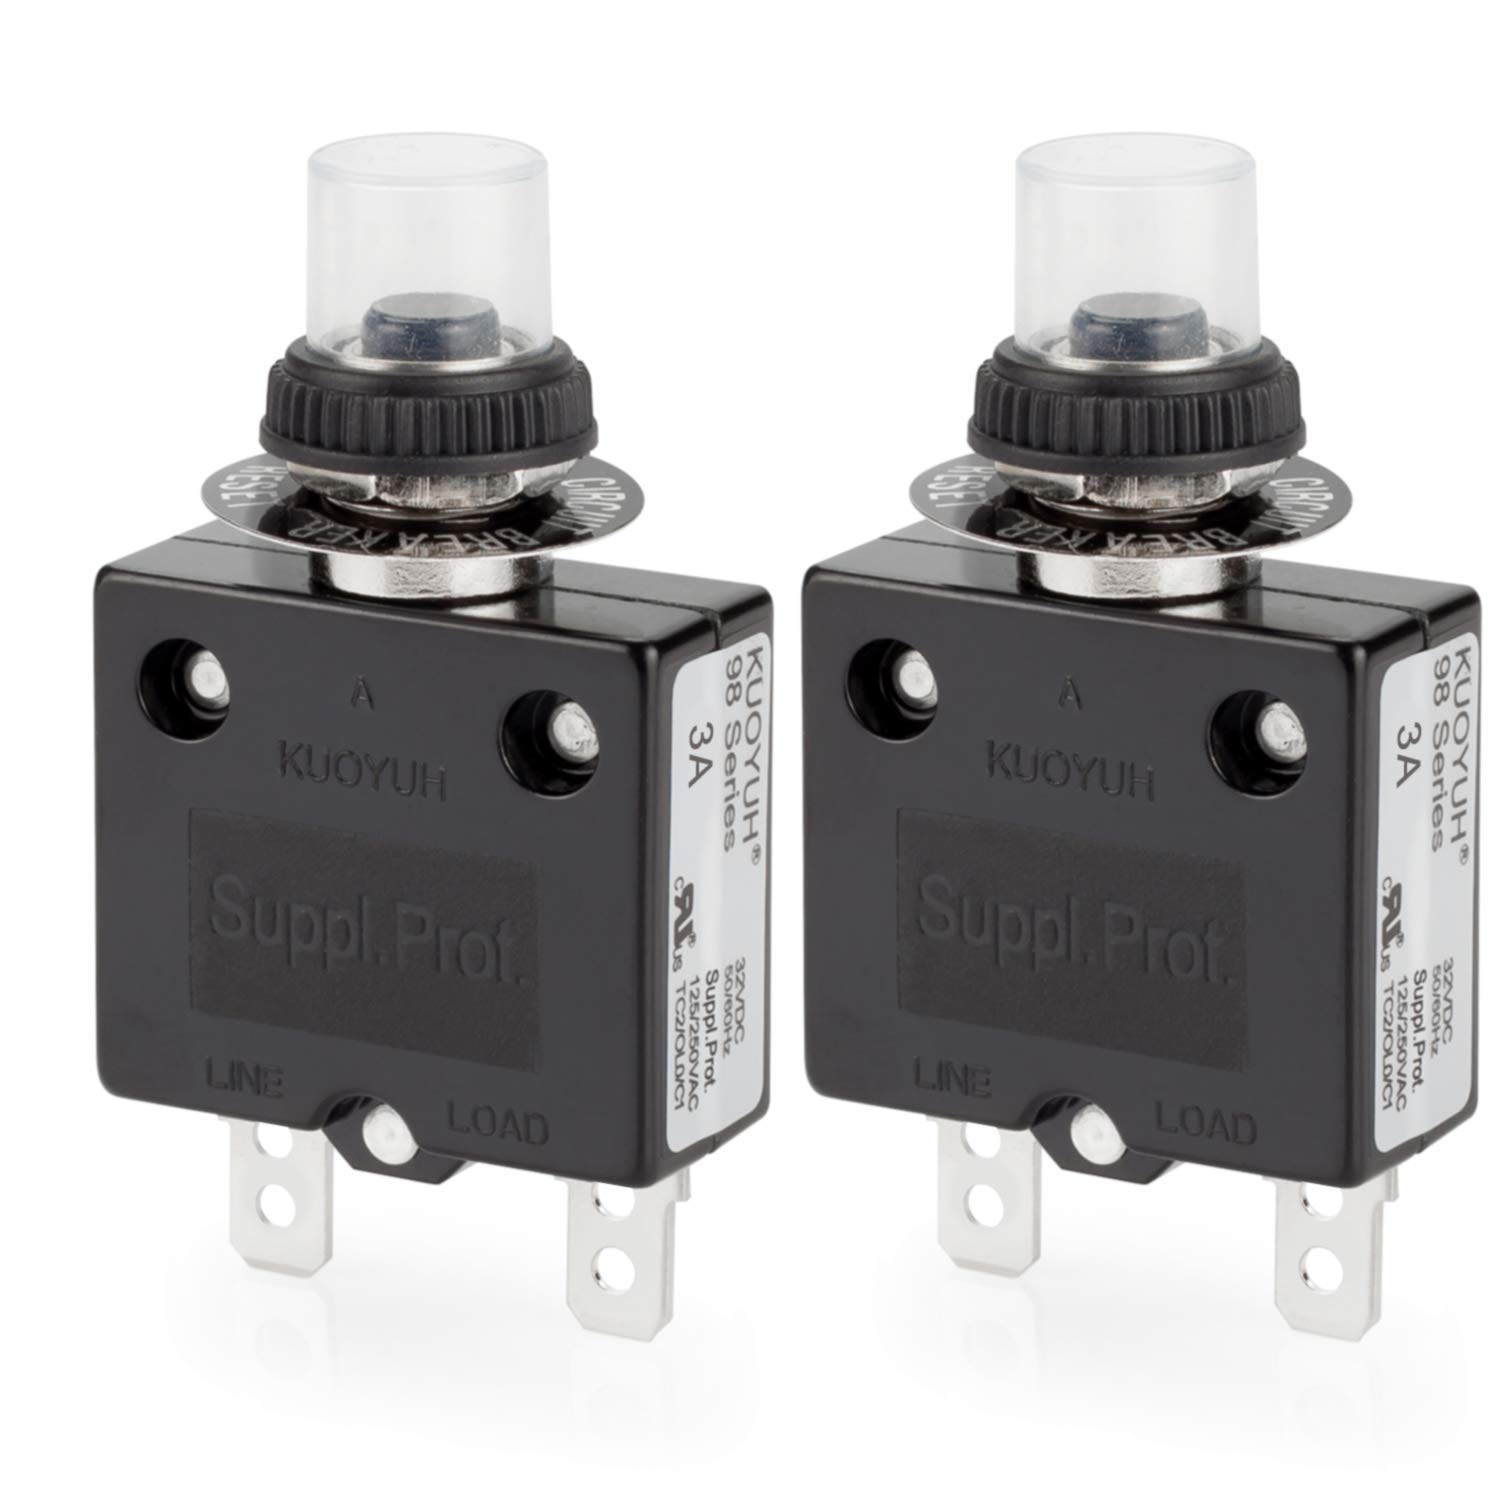 uxcell Thermal Circuit Breakers 25A 125//250V AC 32V DC Push Button Manual Reset Overload Protector Switch 2 Pcs